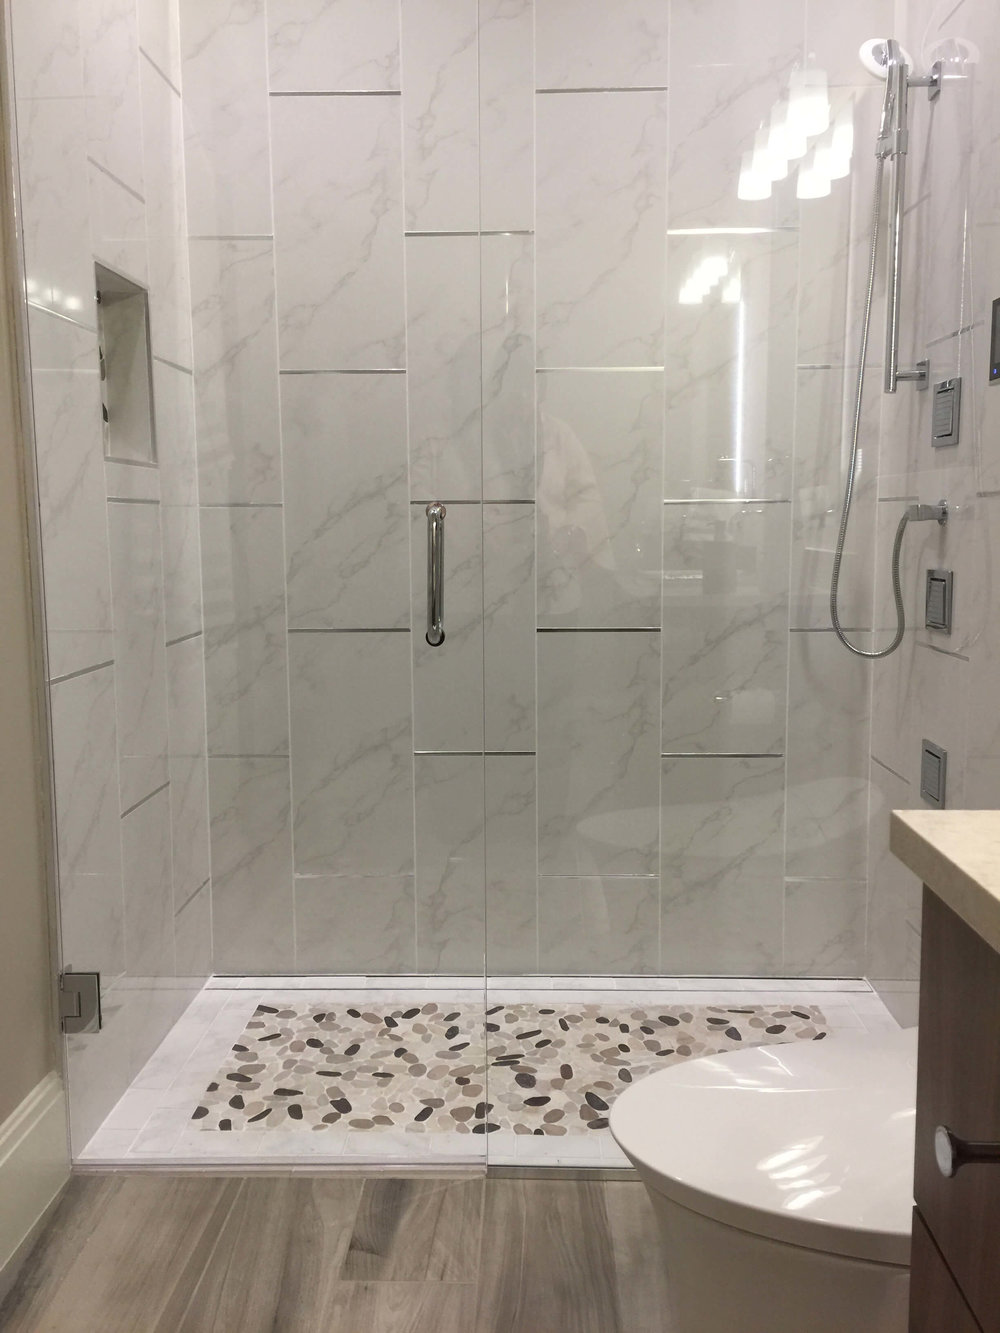 Large shower with no curb from  The New American Home - KBIS2018